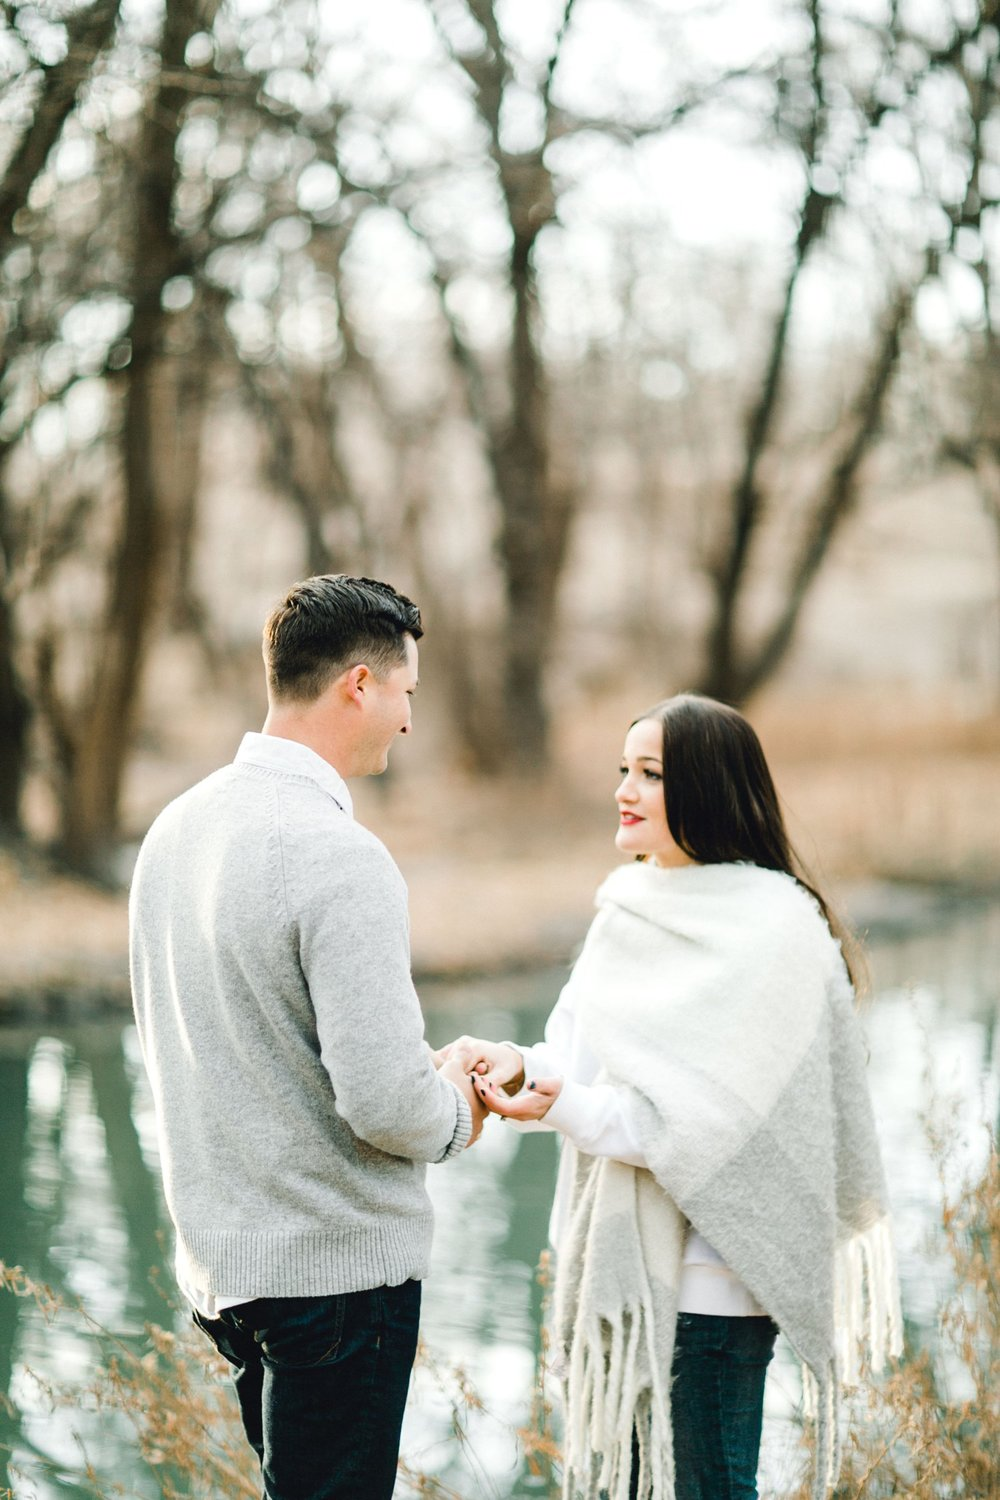 Steven-and-jenna-taubena-lubbock-texas-photographer_0045.jpg